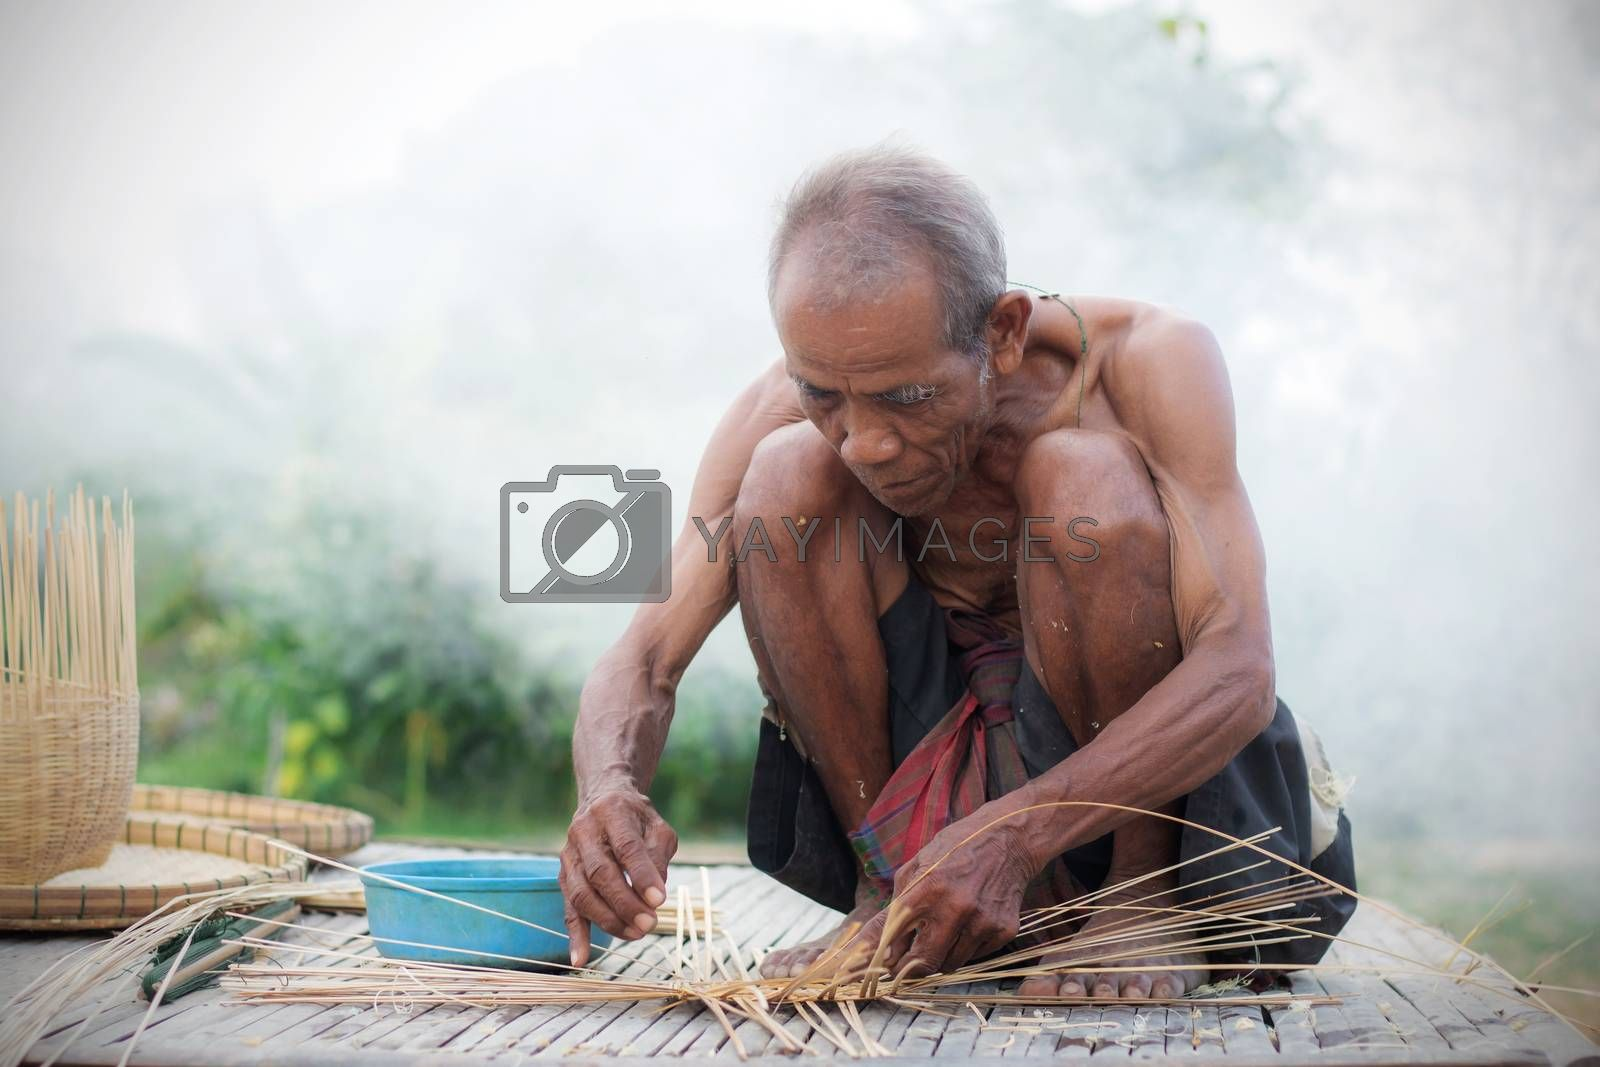 Older people with basketry in the countryside.